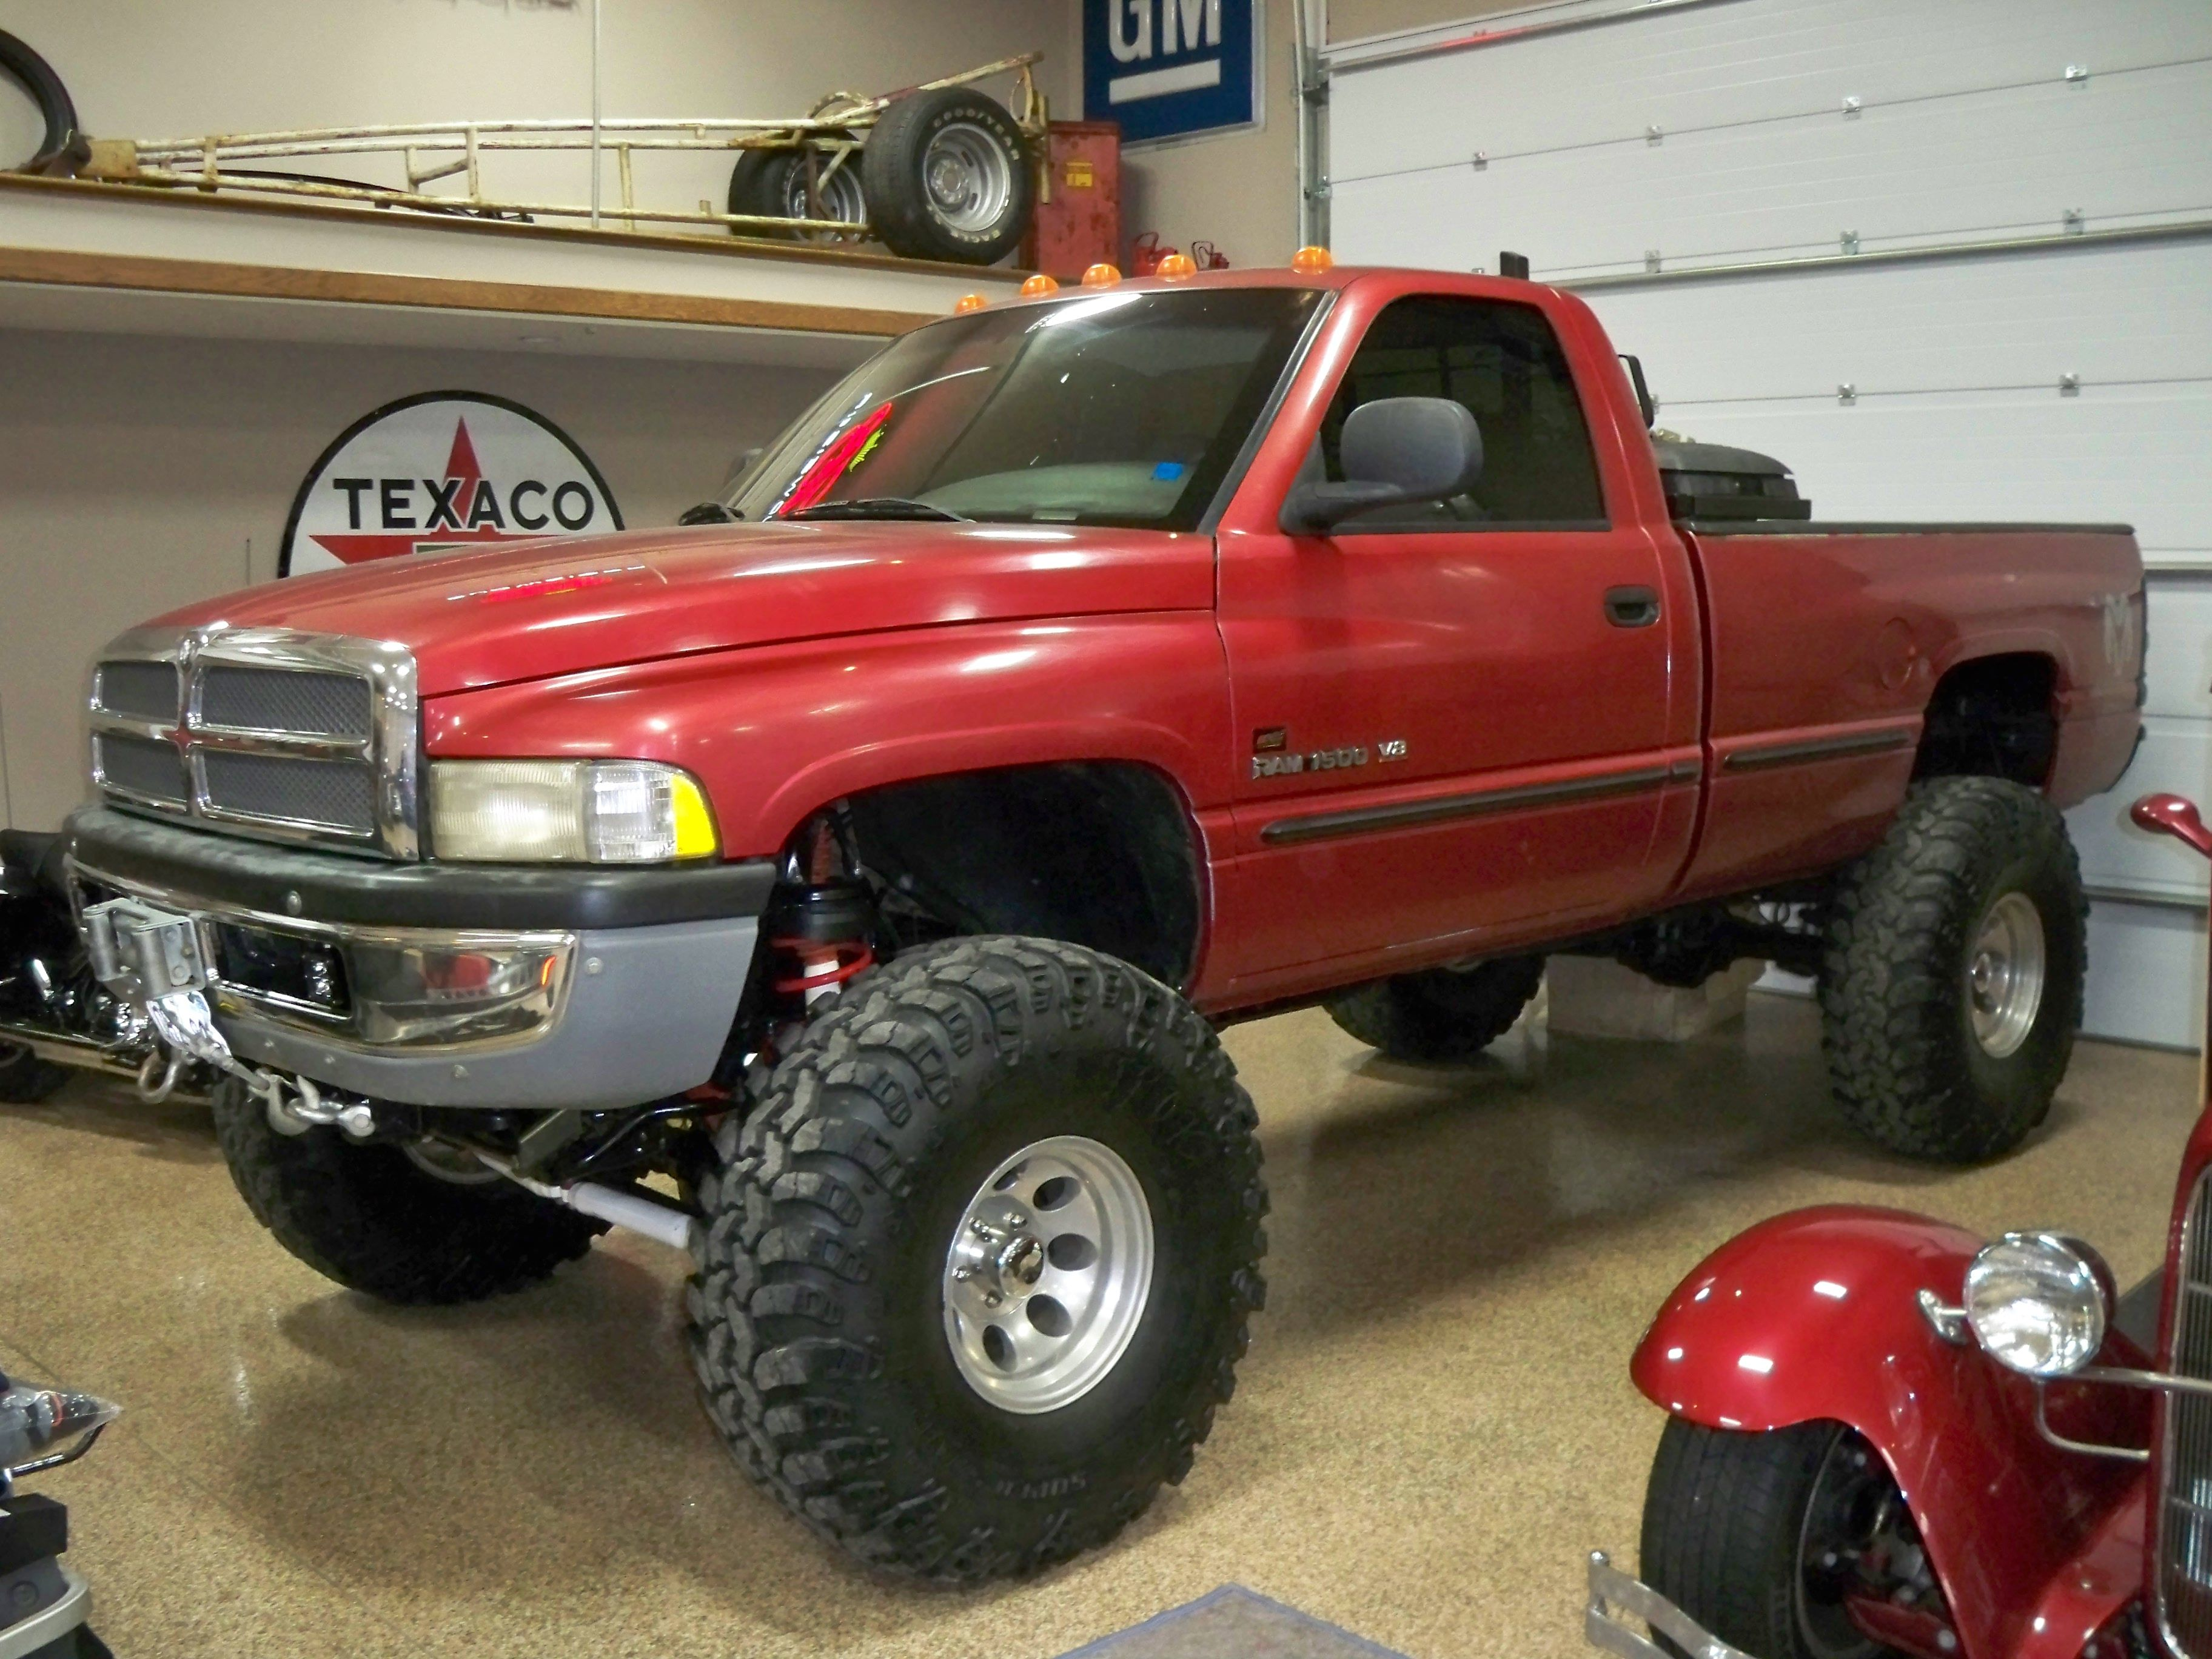 1998 dodge ram 4x4 12 lift 42 tires 360 magnum 400hp  [ 3648 x 2736 Pixel ]